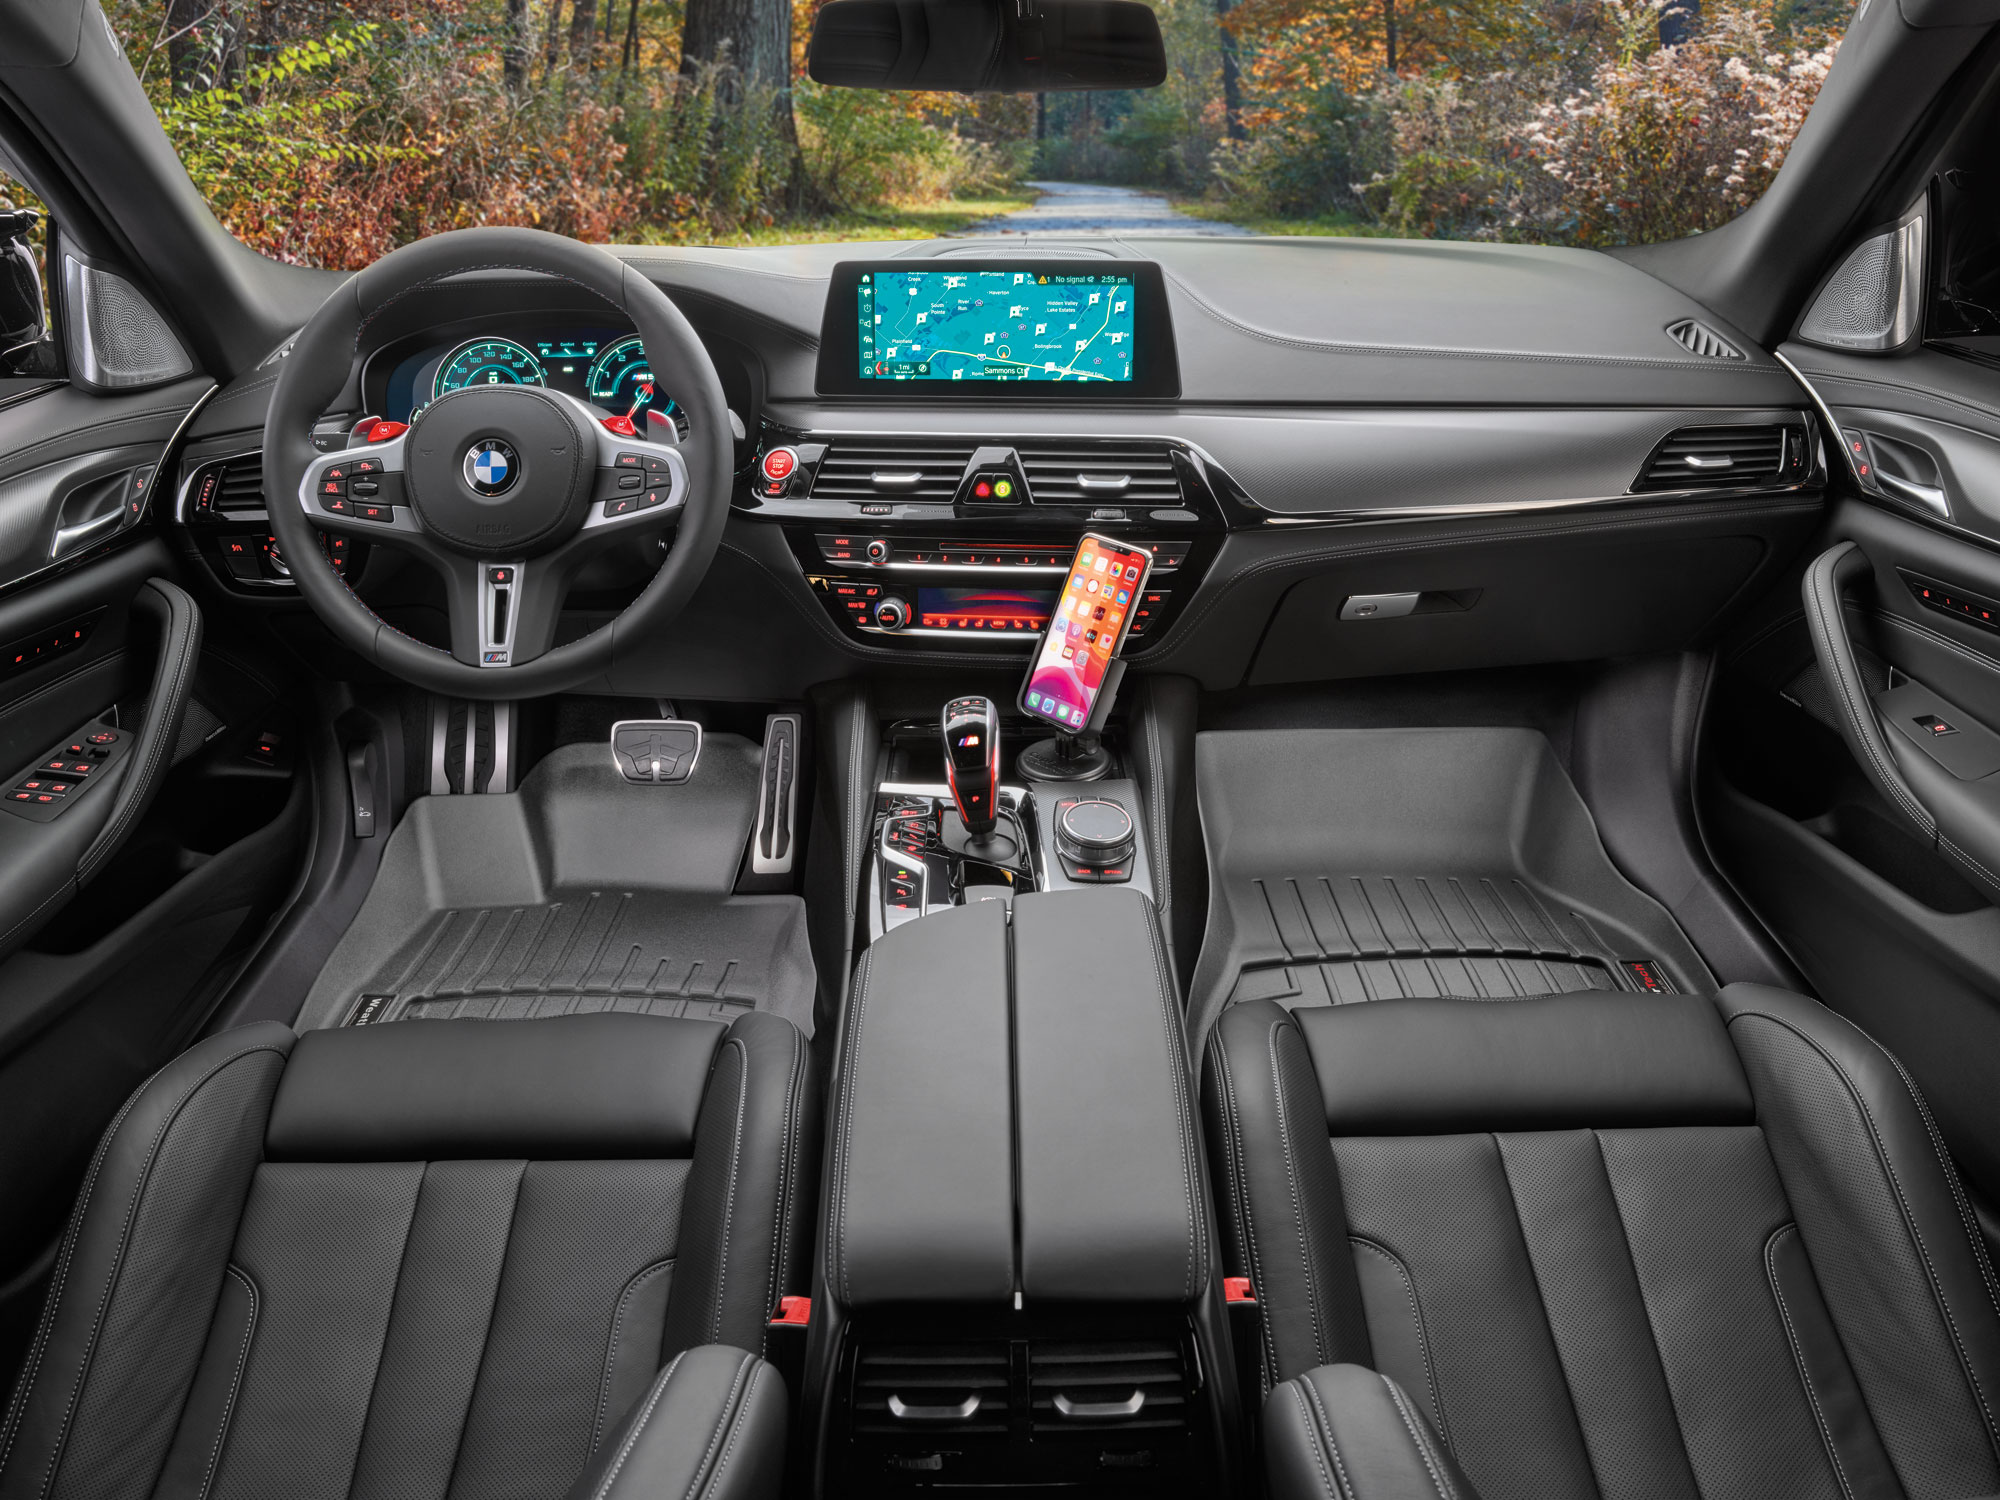 Black WeatherTech FloorLiners and CupFone in a black BMW. WeatherTech FloorLiners will keep the interior of your vehicle protected from autumn weather.